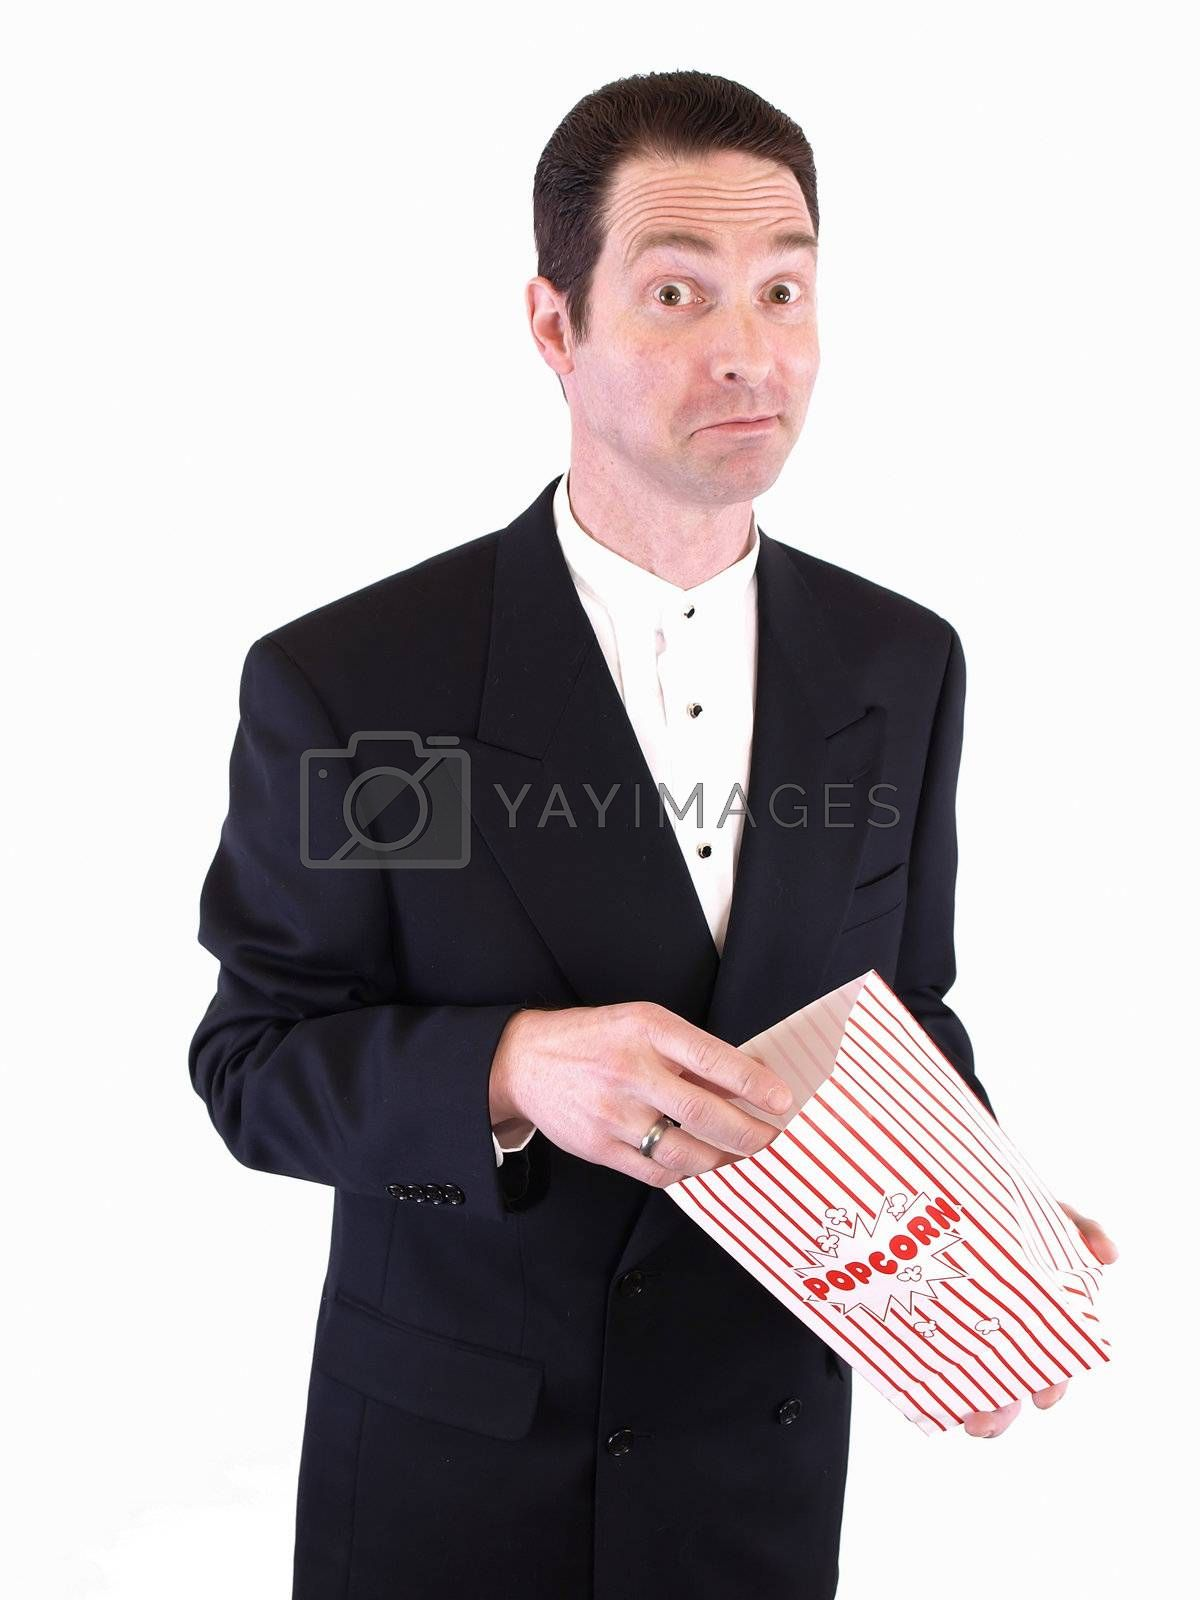 A white male in a suit puts his hand into a popcorn bag. He is chewing on something in his mouth.